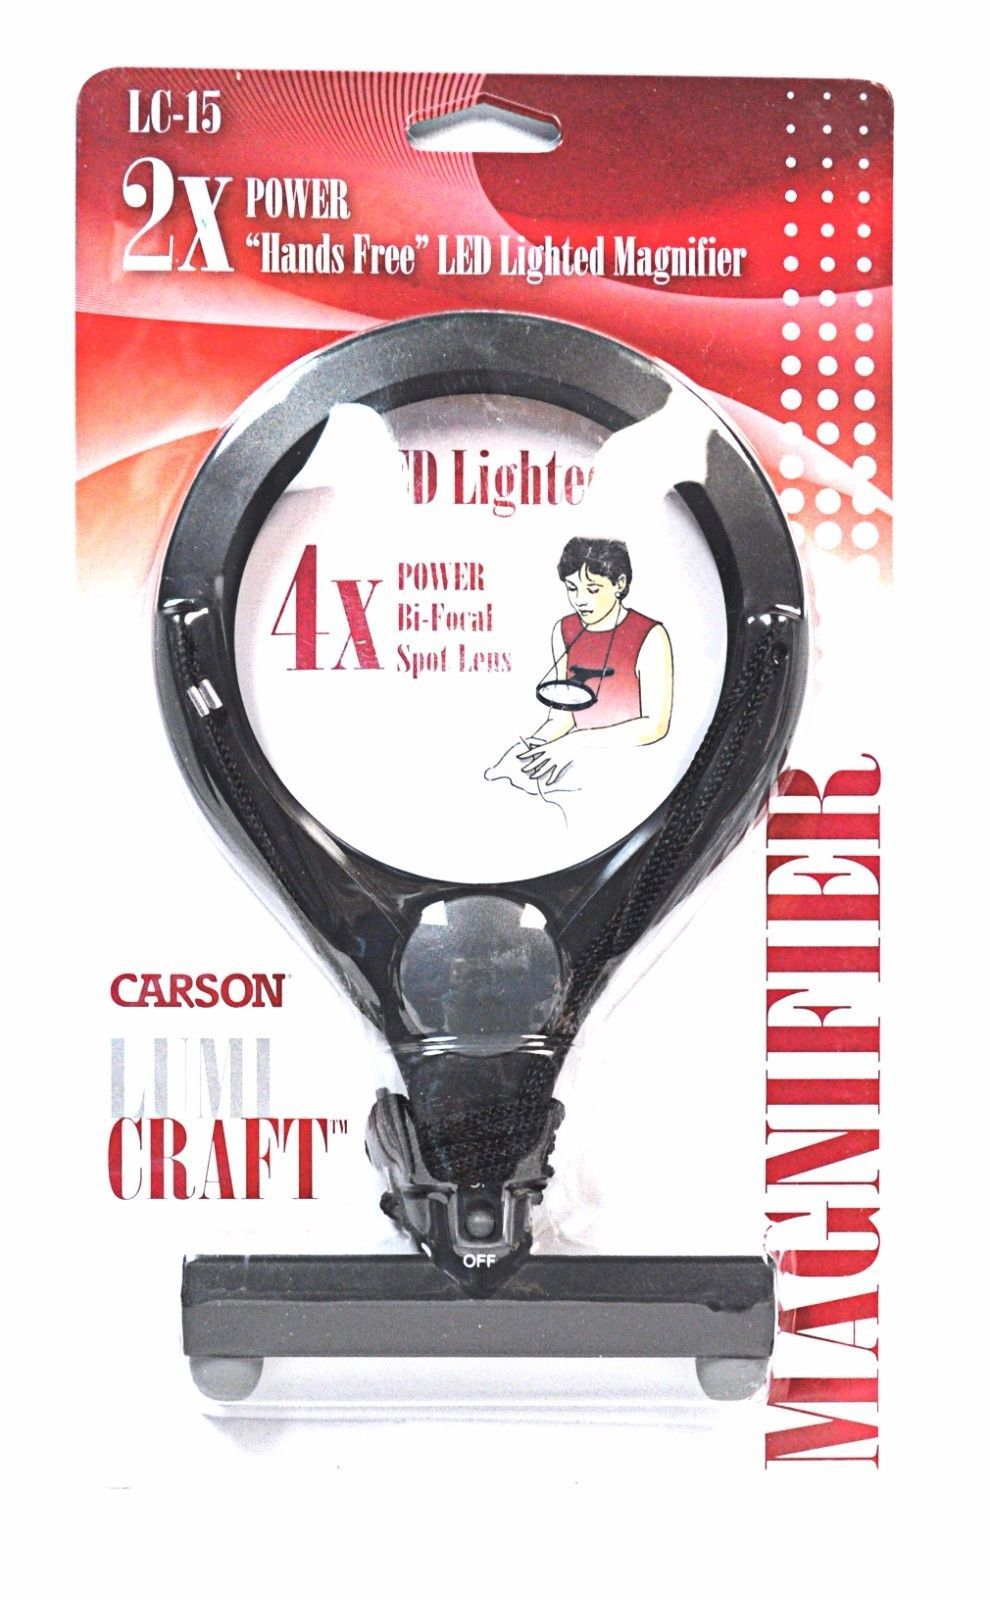 Carson LumiCraft 2x Hands Free Lighted Magnifier